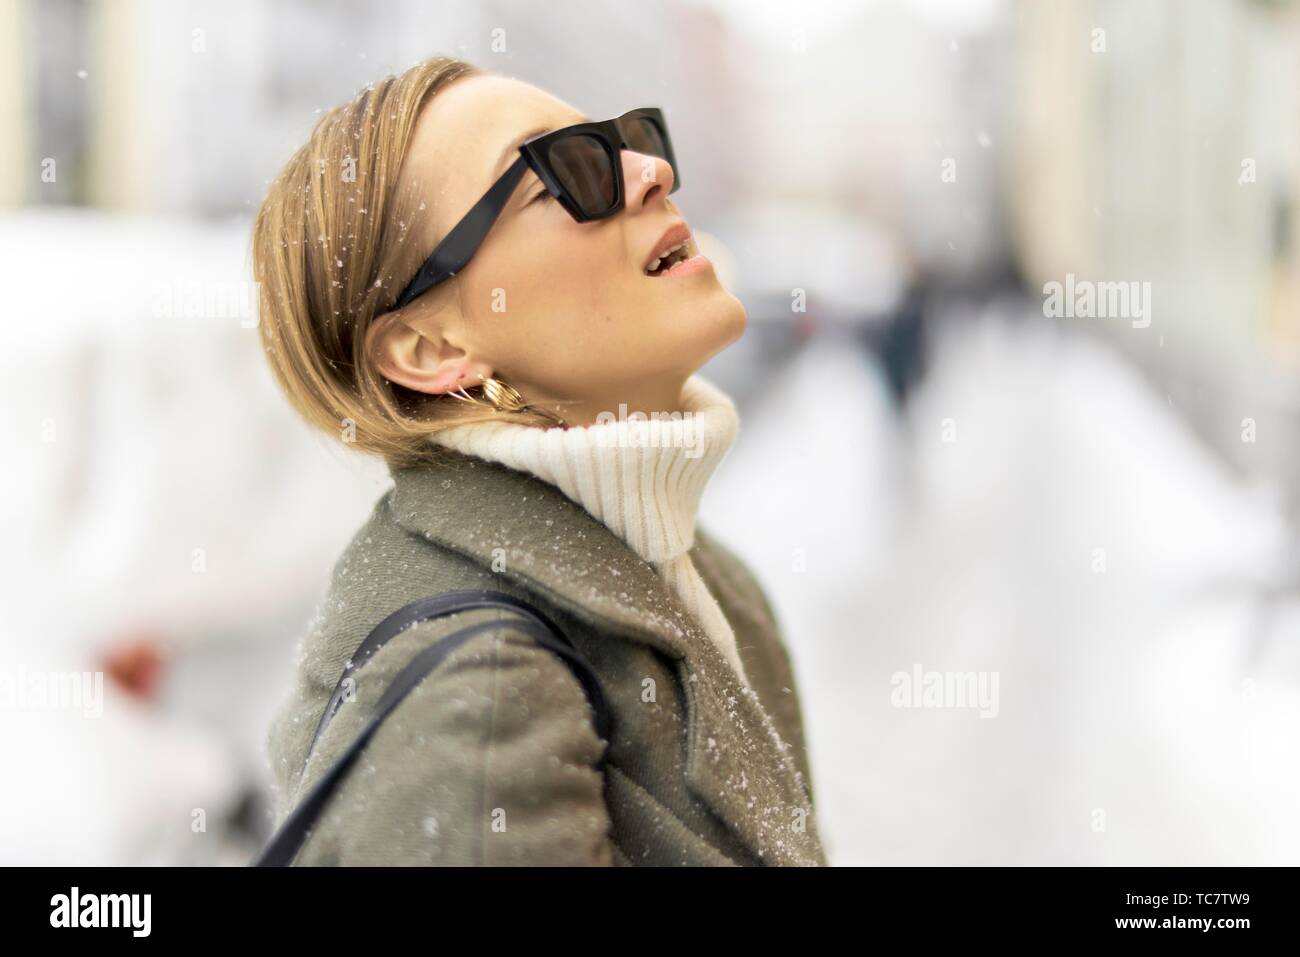 fashionable German woman, in Munich, Germany. - Stock Image